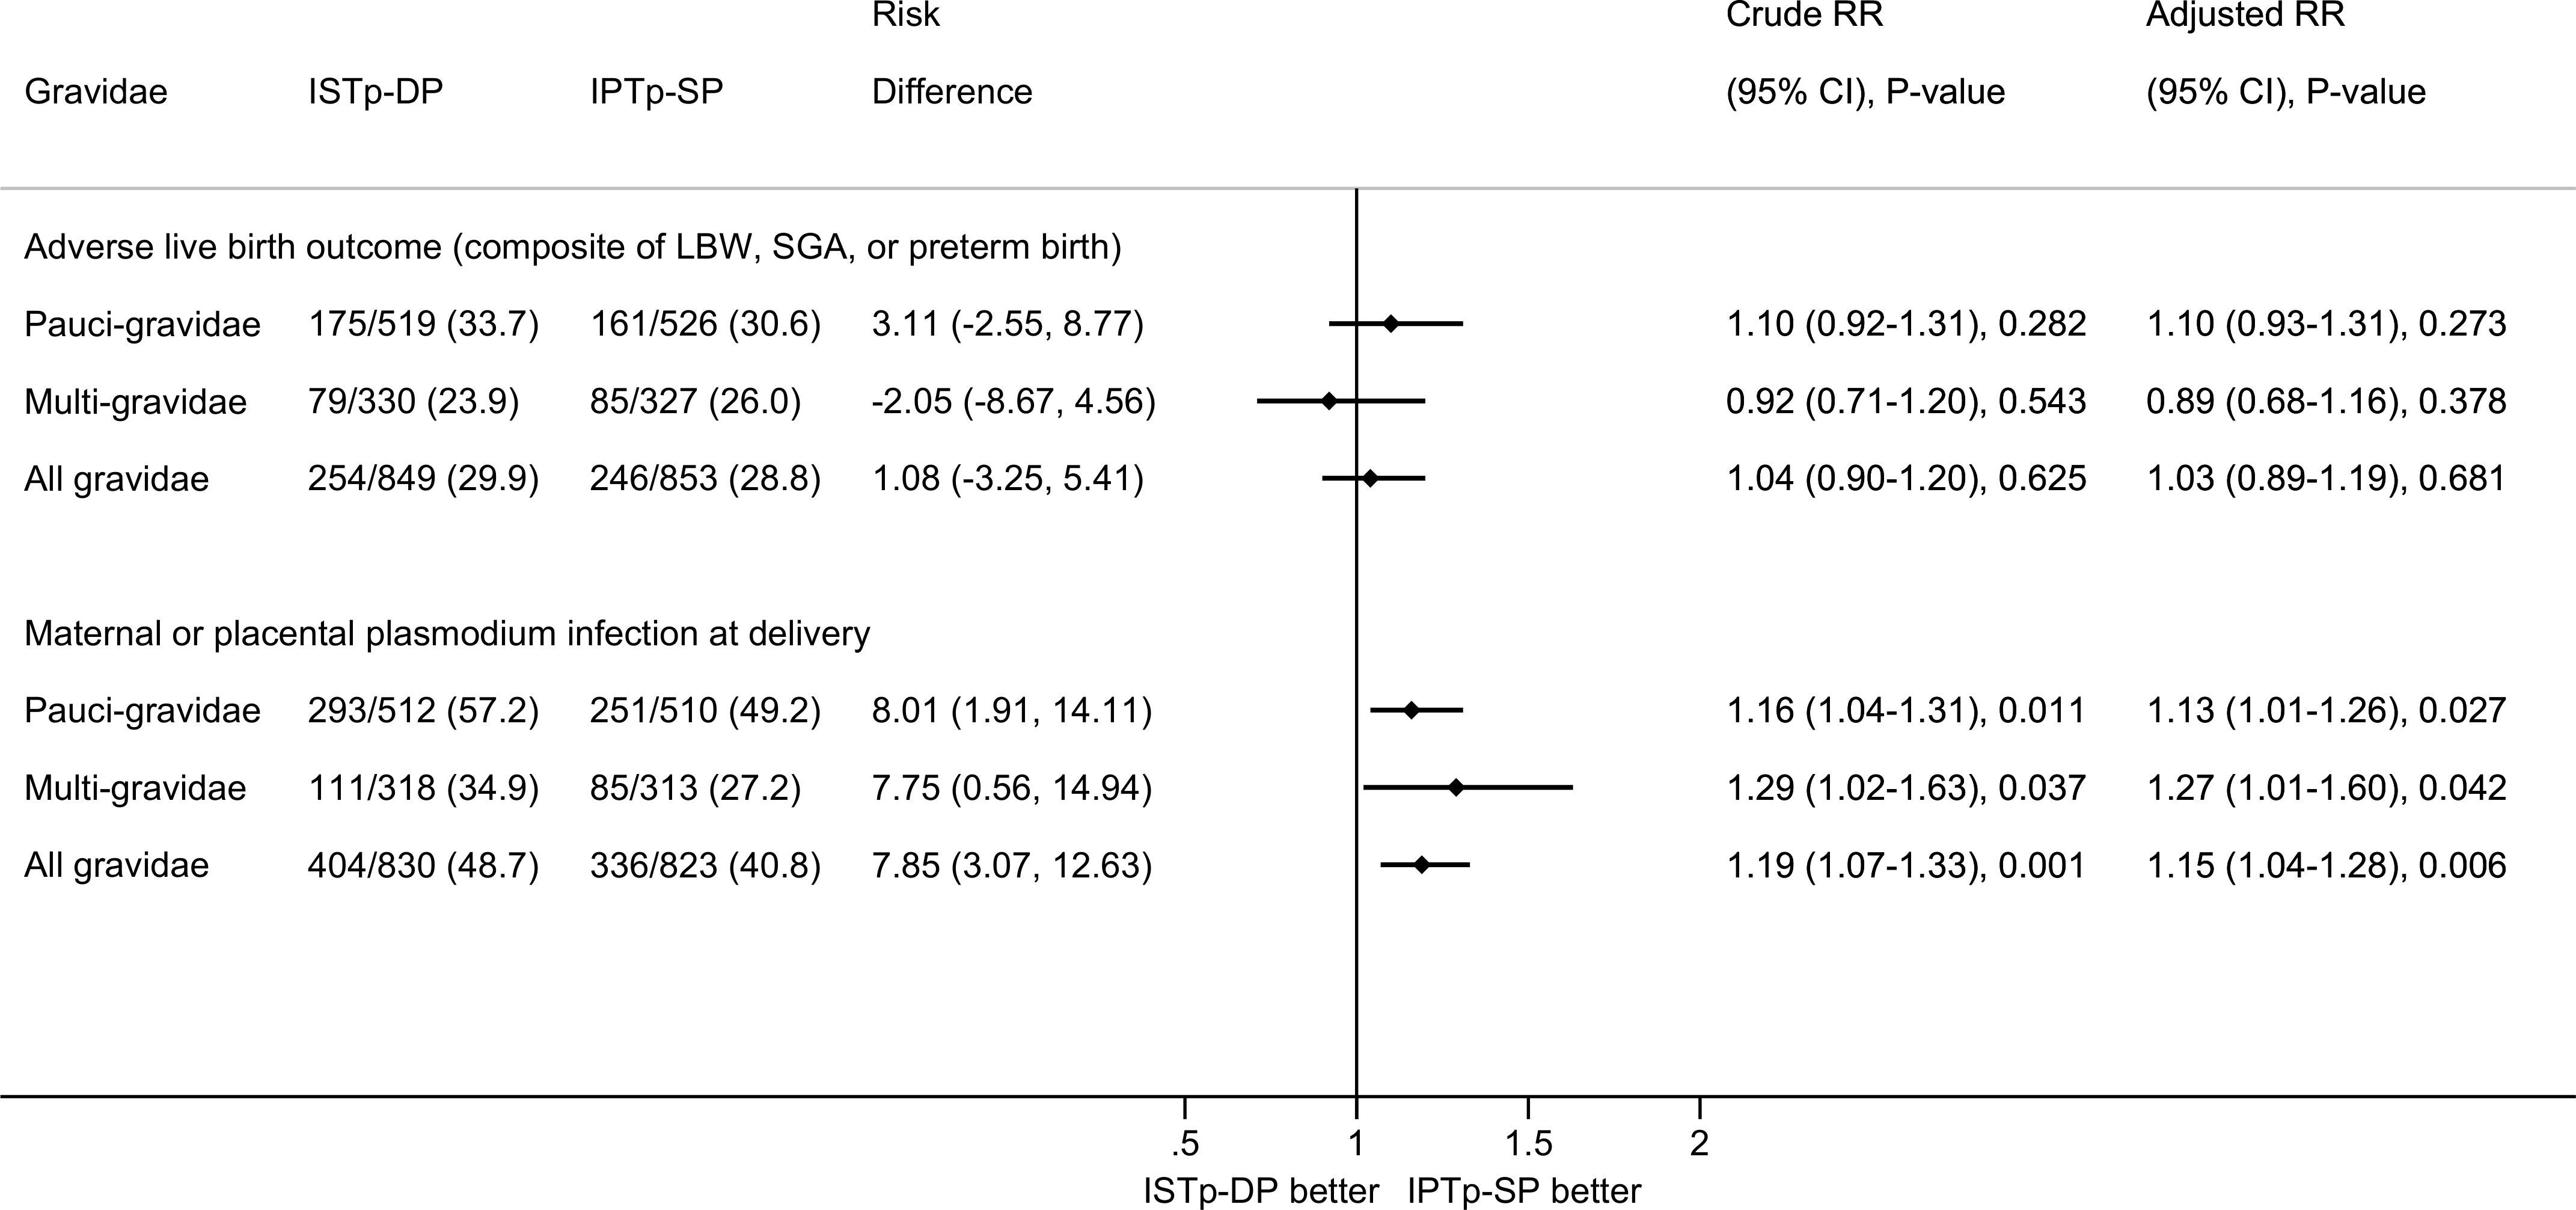 Efficacy of ISTp-DP versus IPTp-SP on the primary outcomes of adverse live birth outcome and maternal or placental plasmodium infection at delivery (any measure).